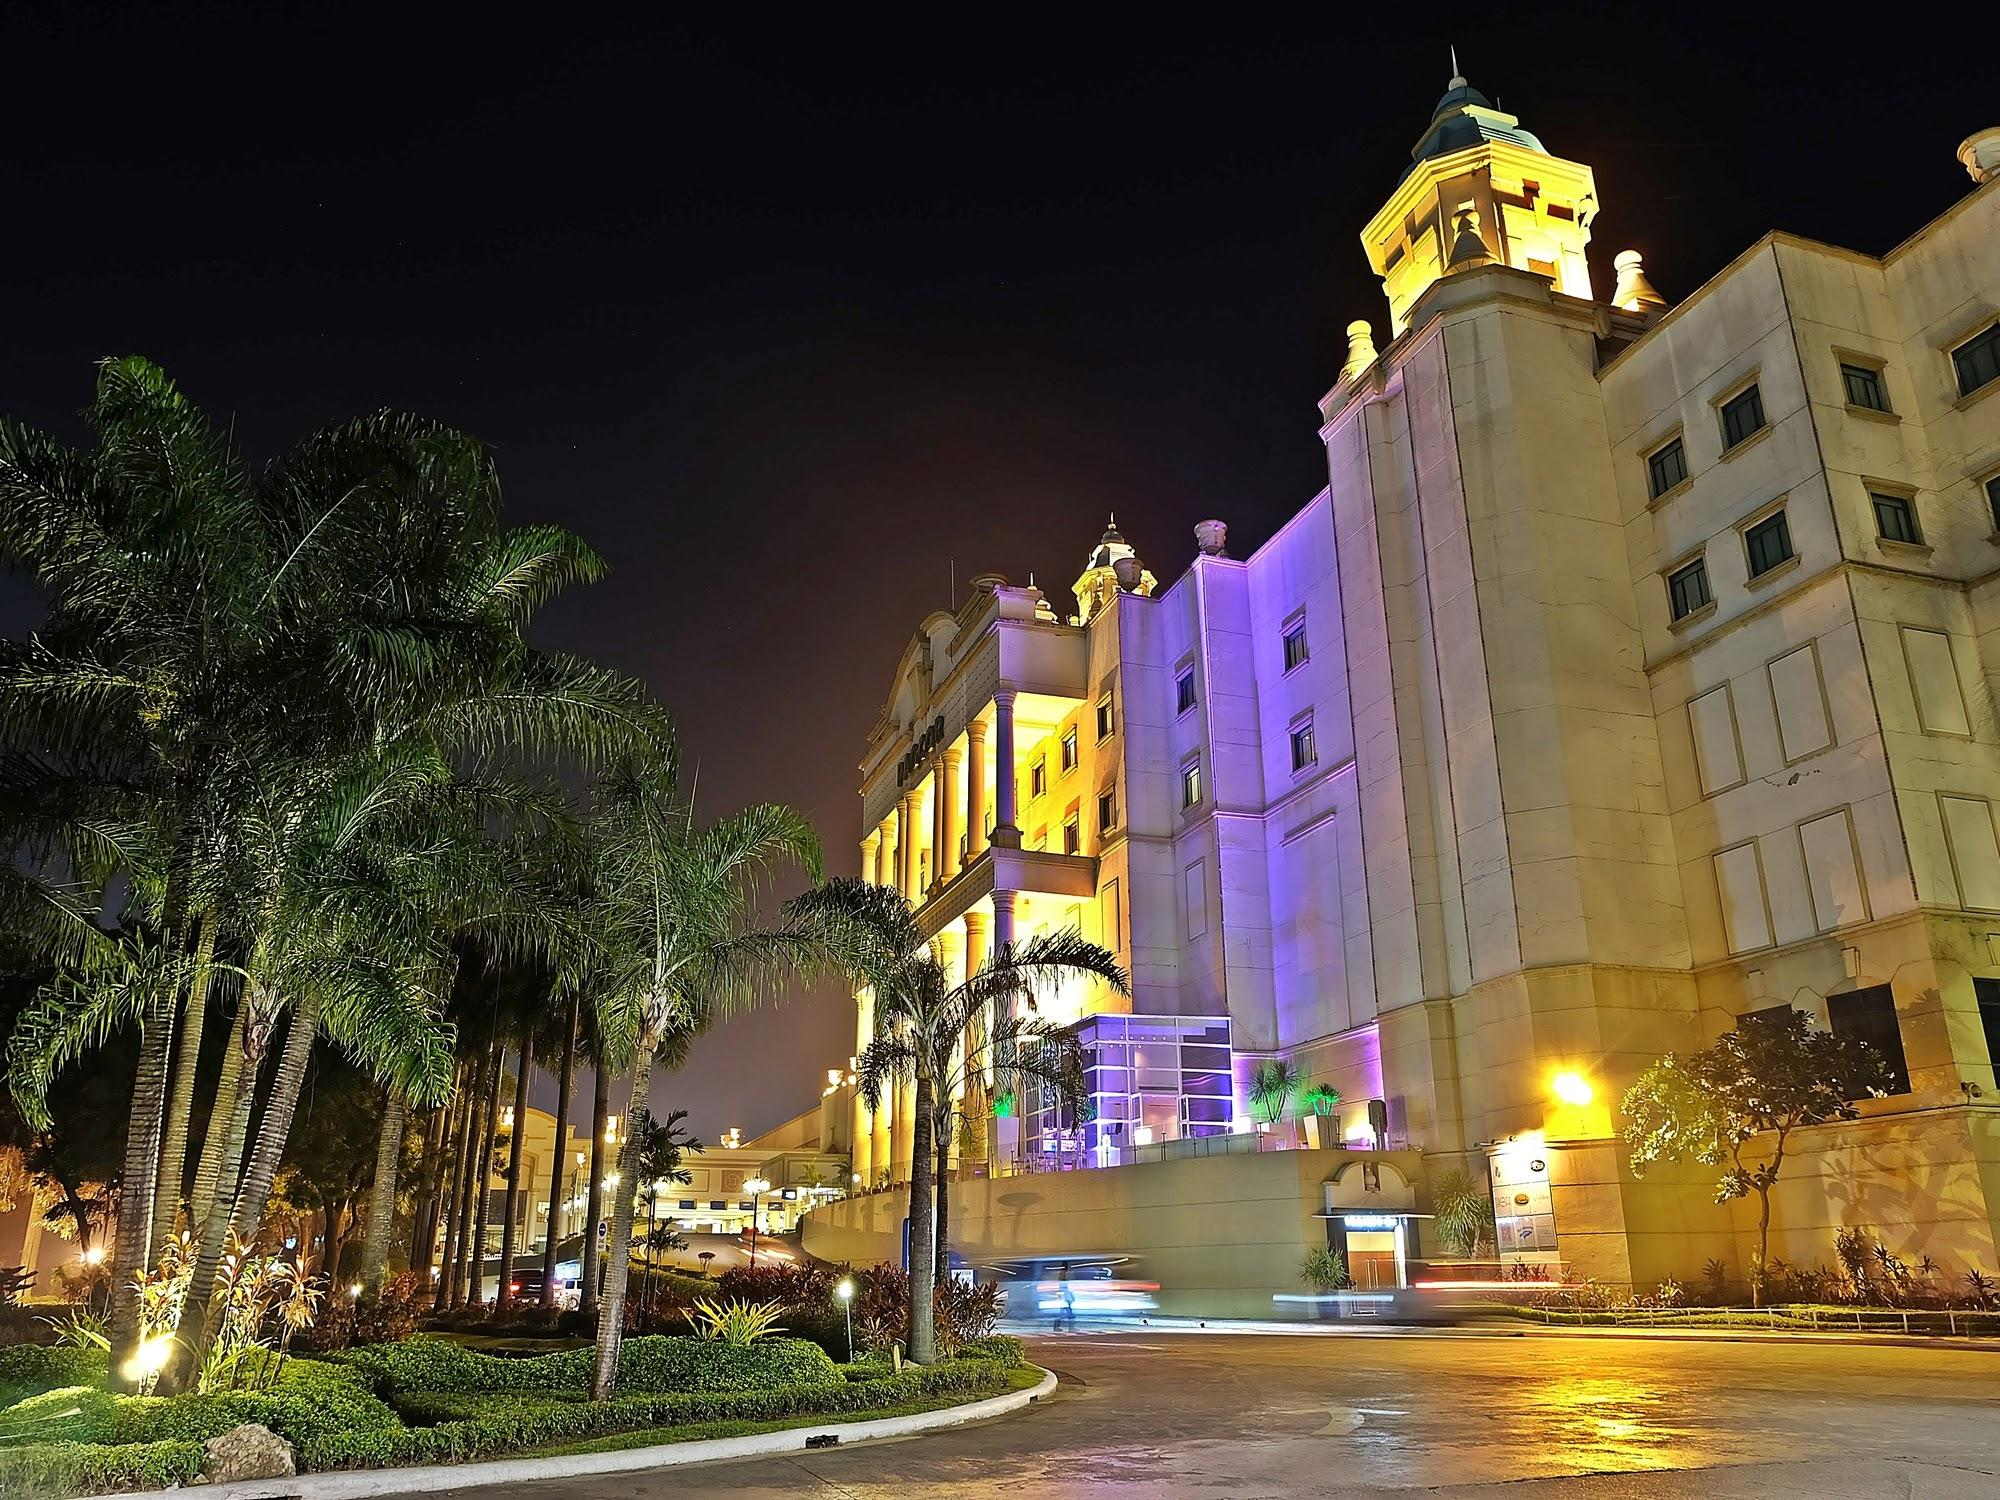 Waterfront Cebu City Hotel and Casino Cebu - zunanjost hotela